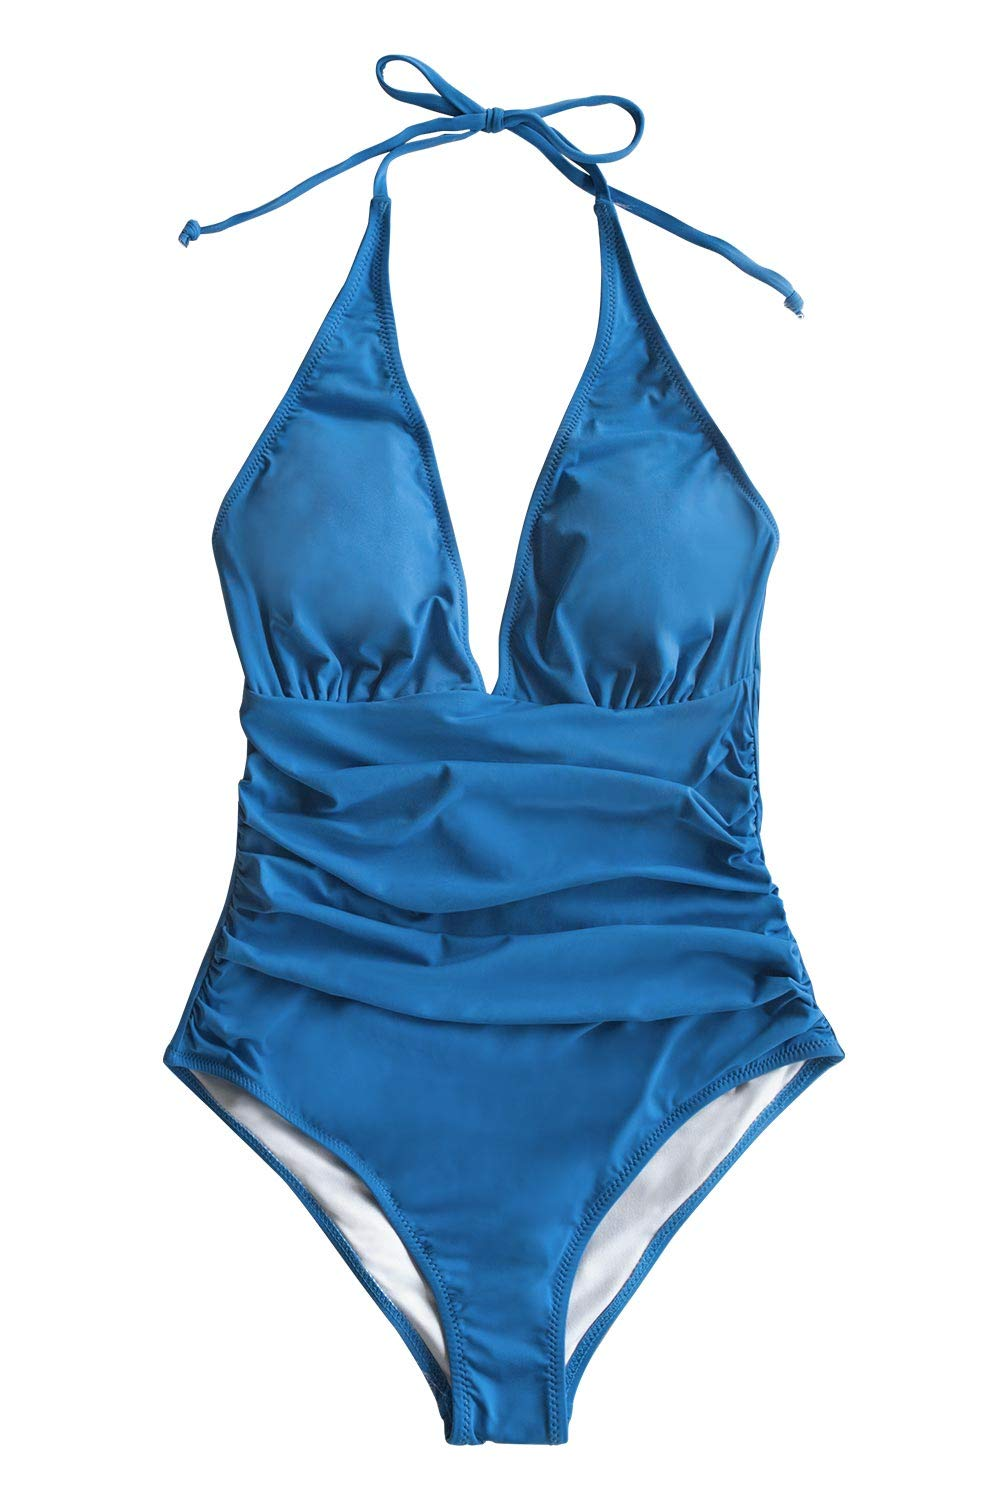 CUPSHE Women's Hlter V Neck Bathing Suit Shirring One Piece Swimsuit, M Blue